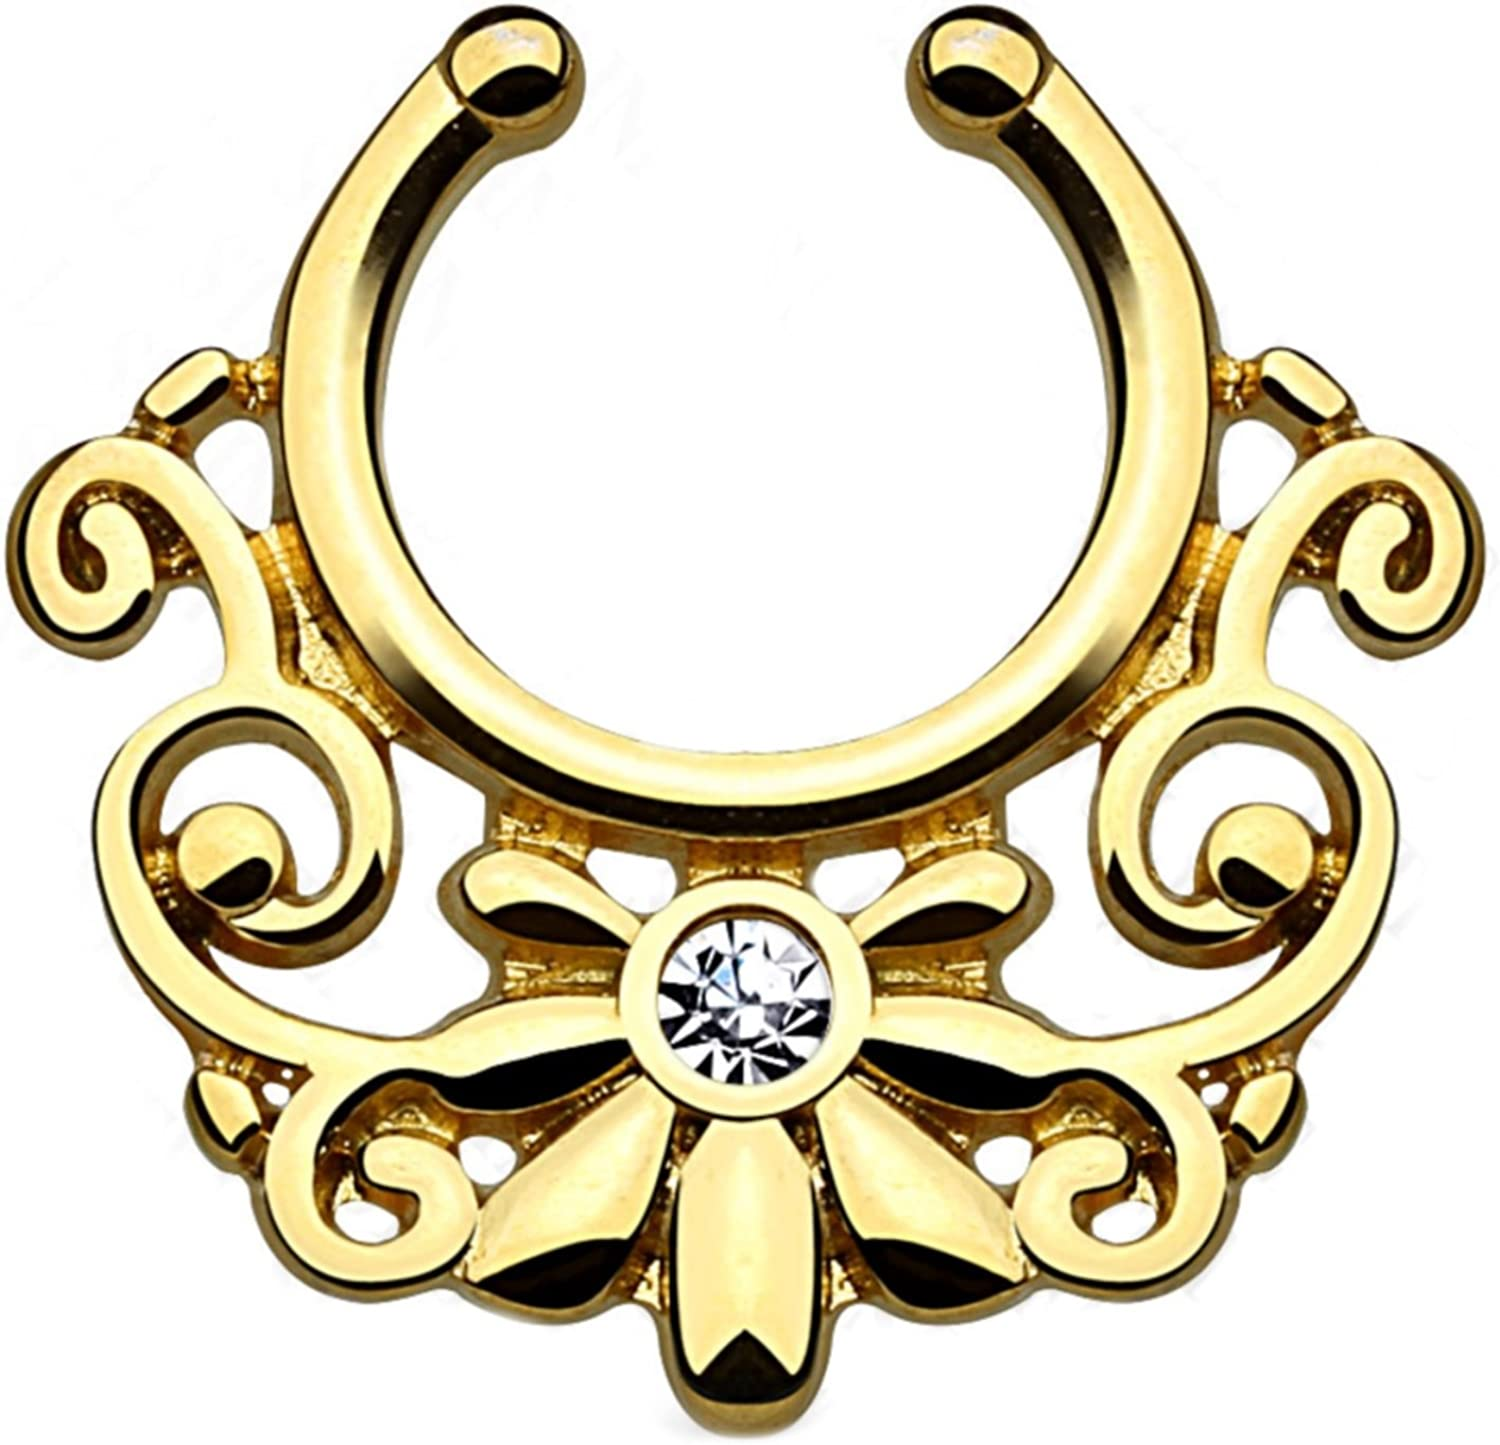 Antique Brass Tone Steel Ornate Tribal Style Septum Hanger Non-Piercing Clip On Jewelry